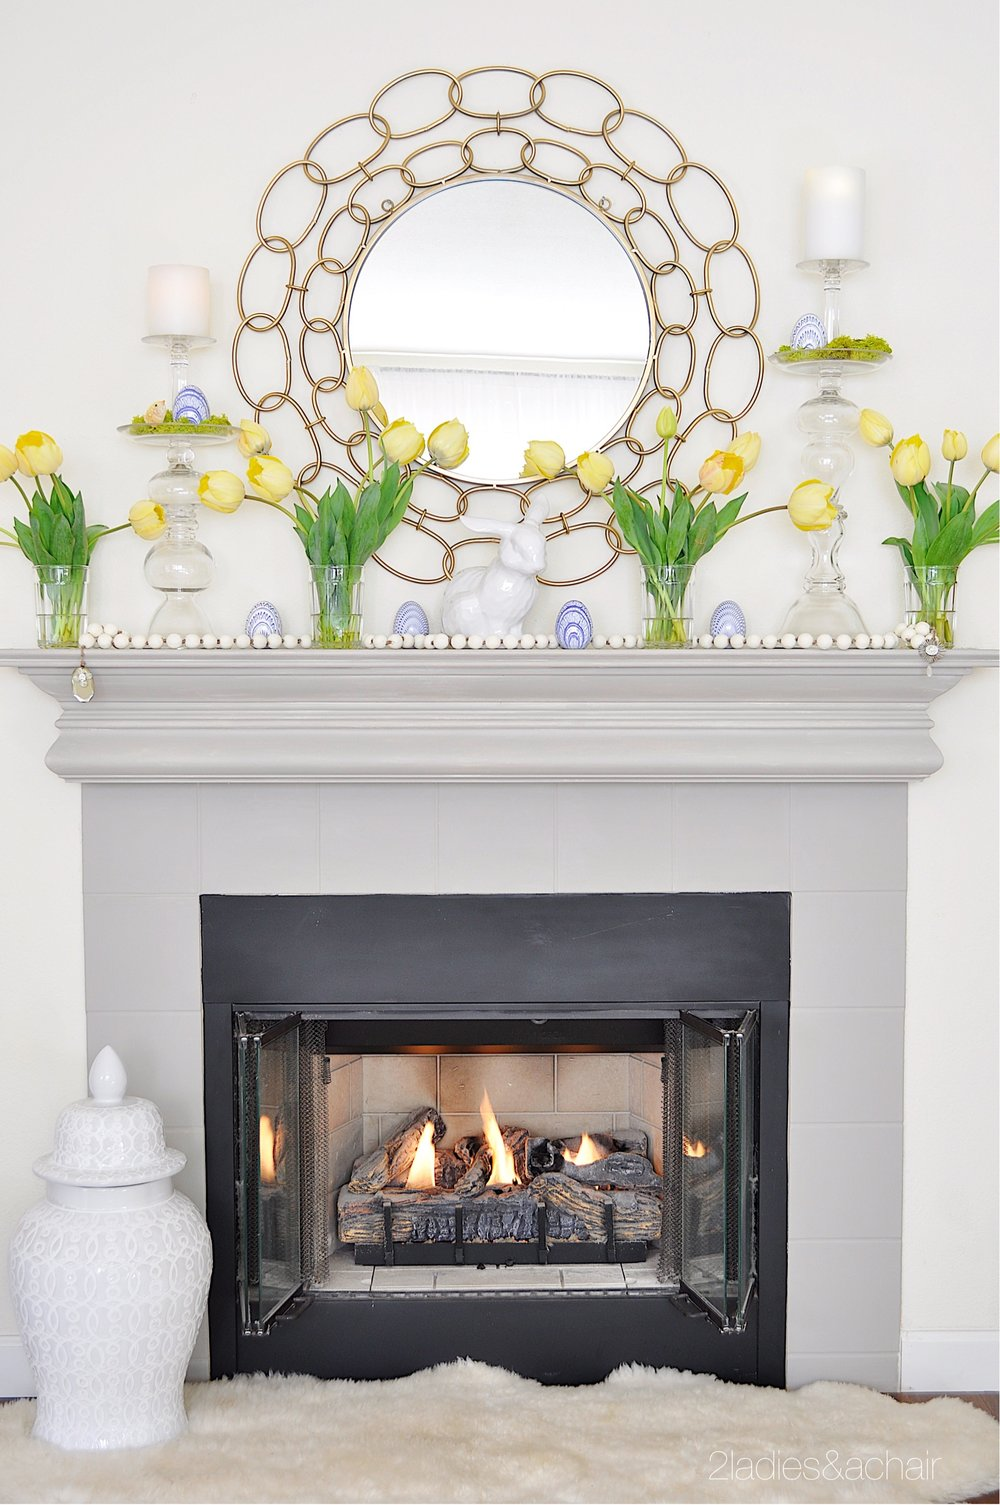 easter mantel decor IMG_1890.JPG